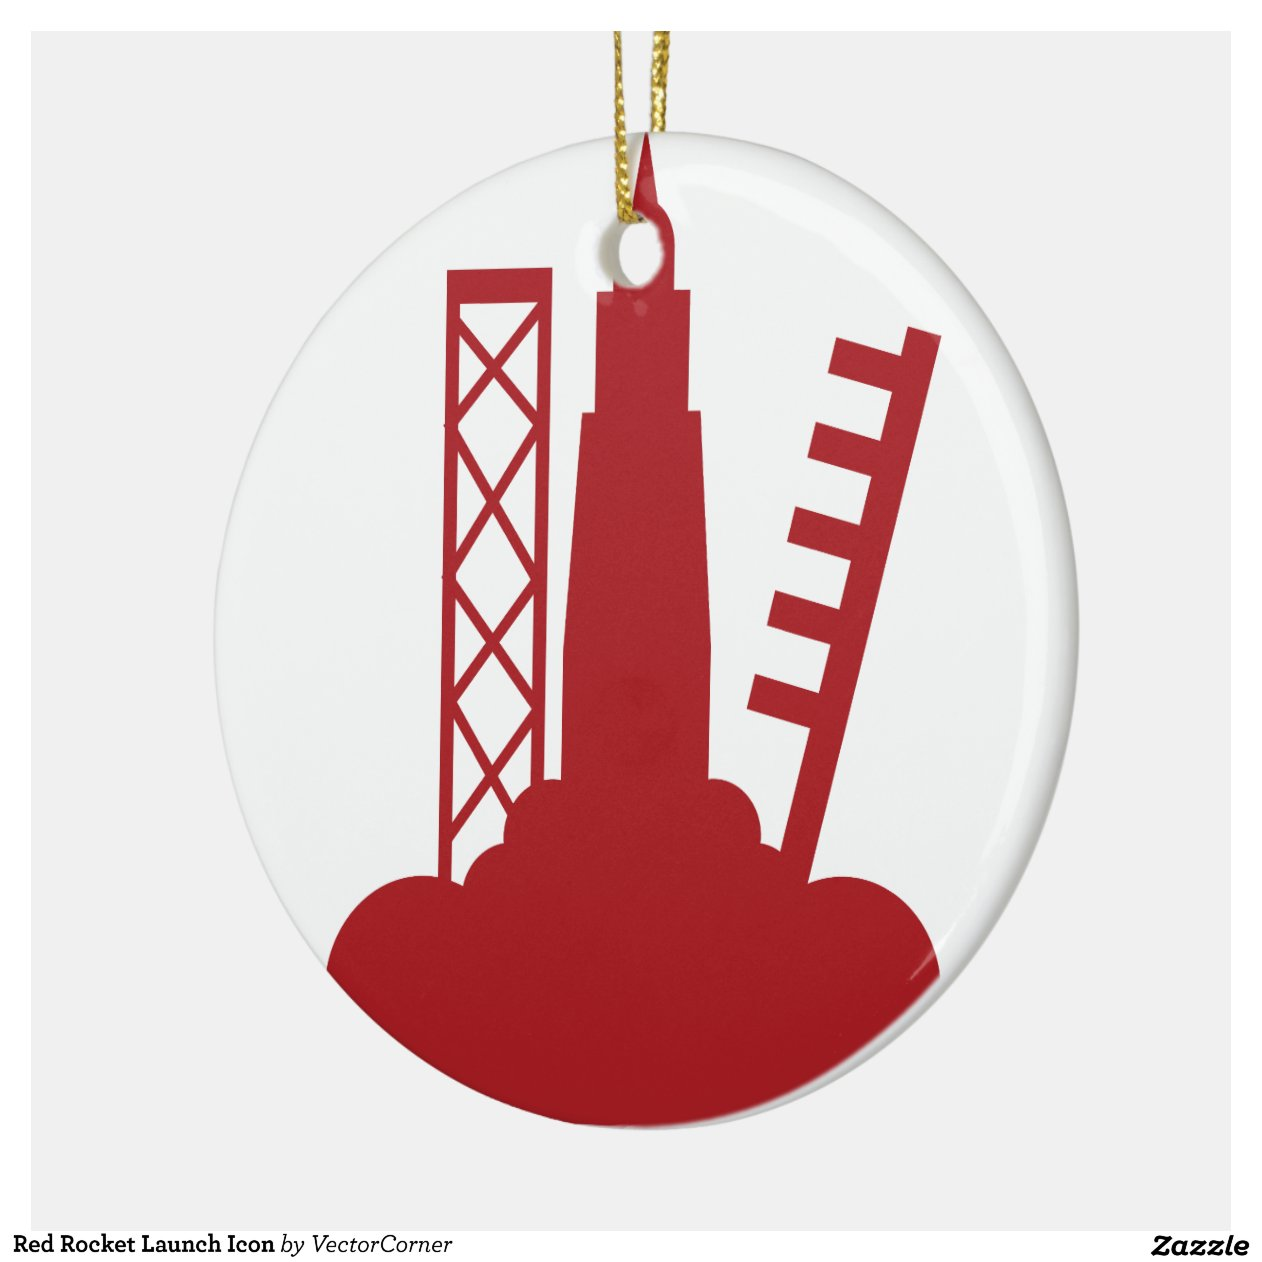 Red Rocket Icon Red Rocket Launch Icon